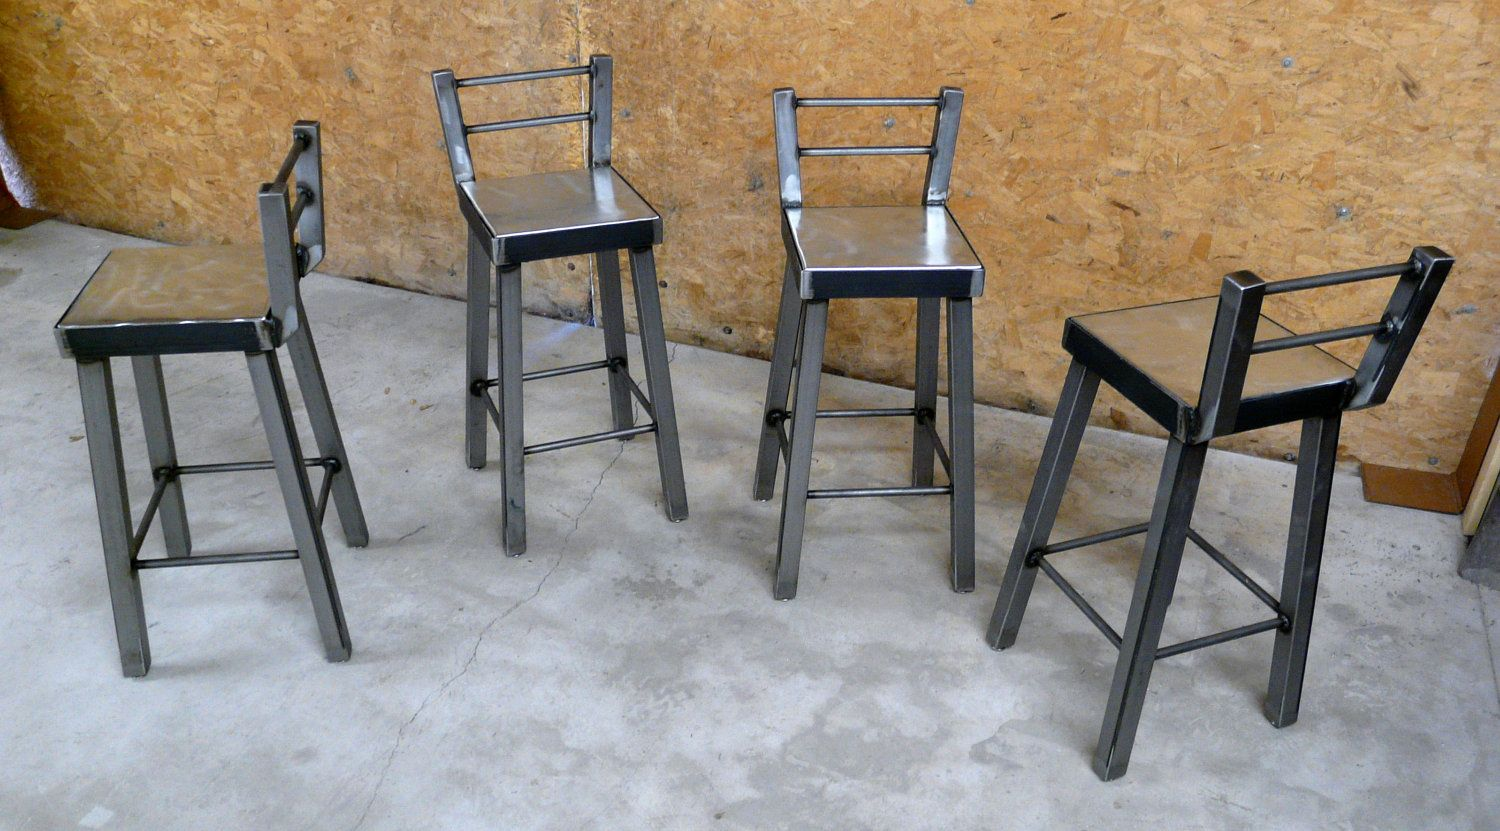 Industrial Bar Stools With Backs Galvanized Steel And Raw Metal Bar Stool With Low Back By